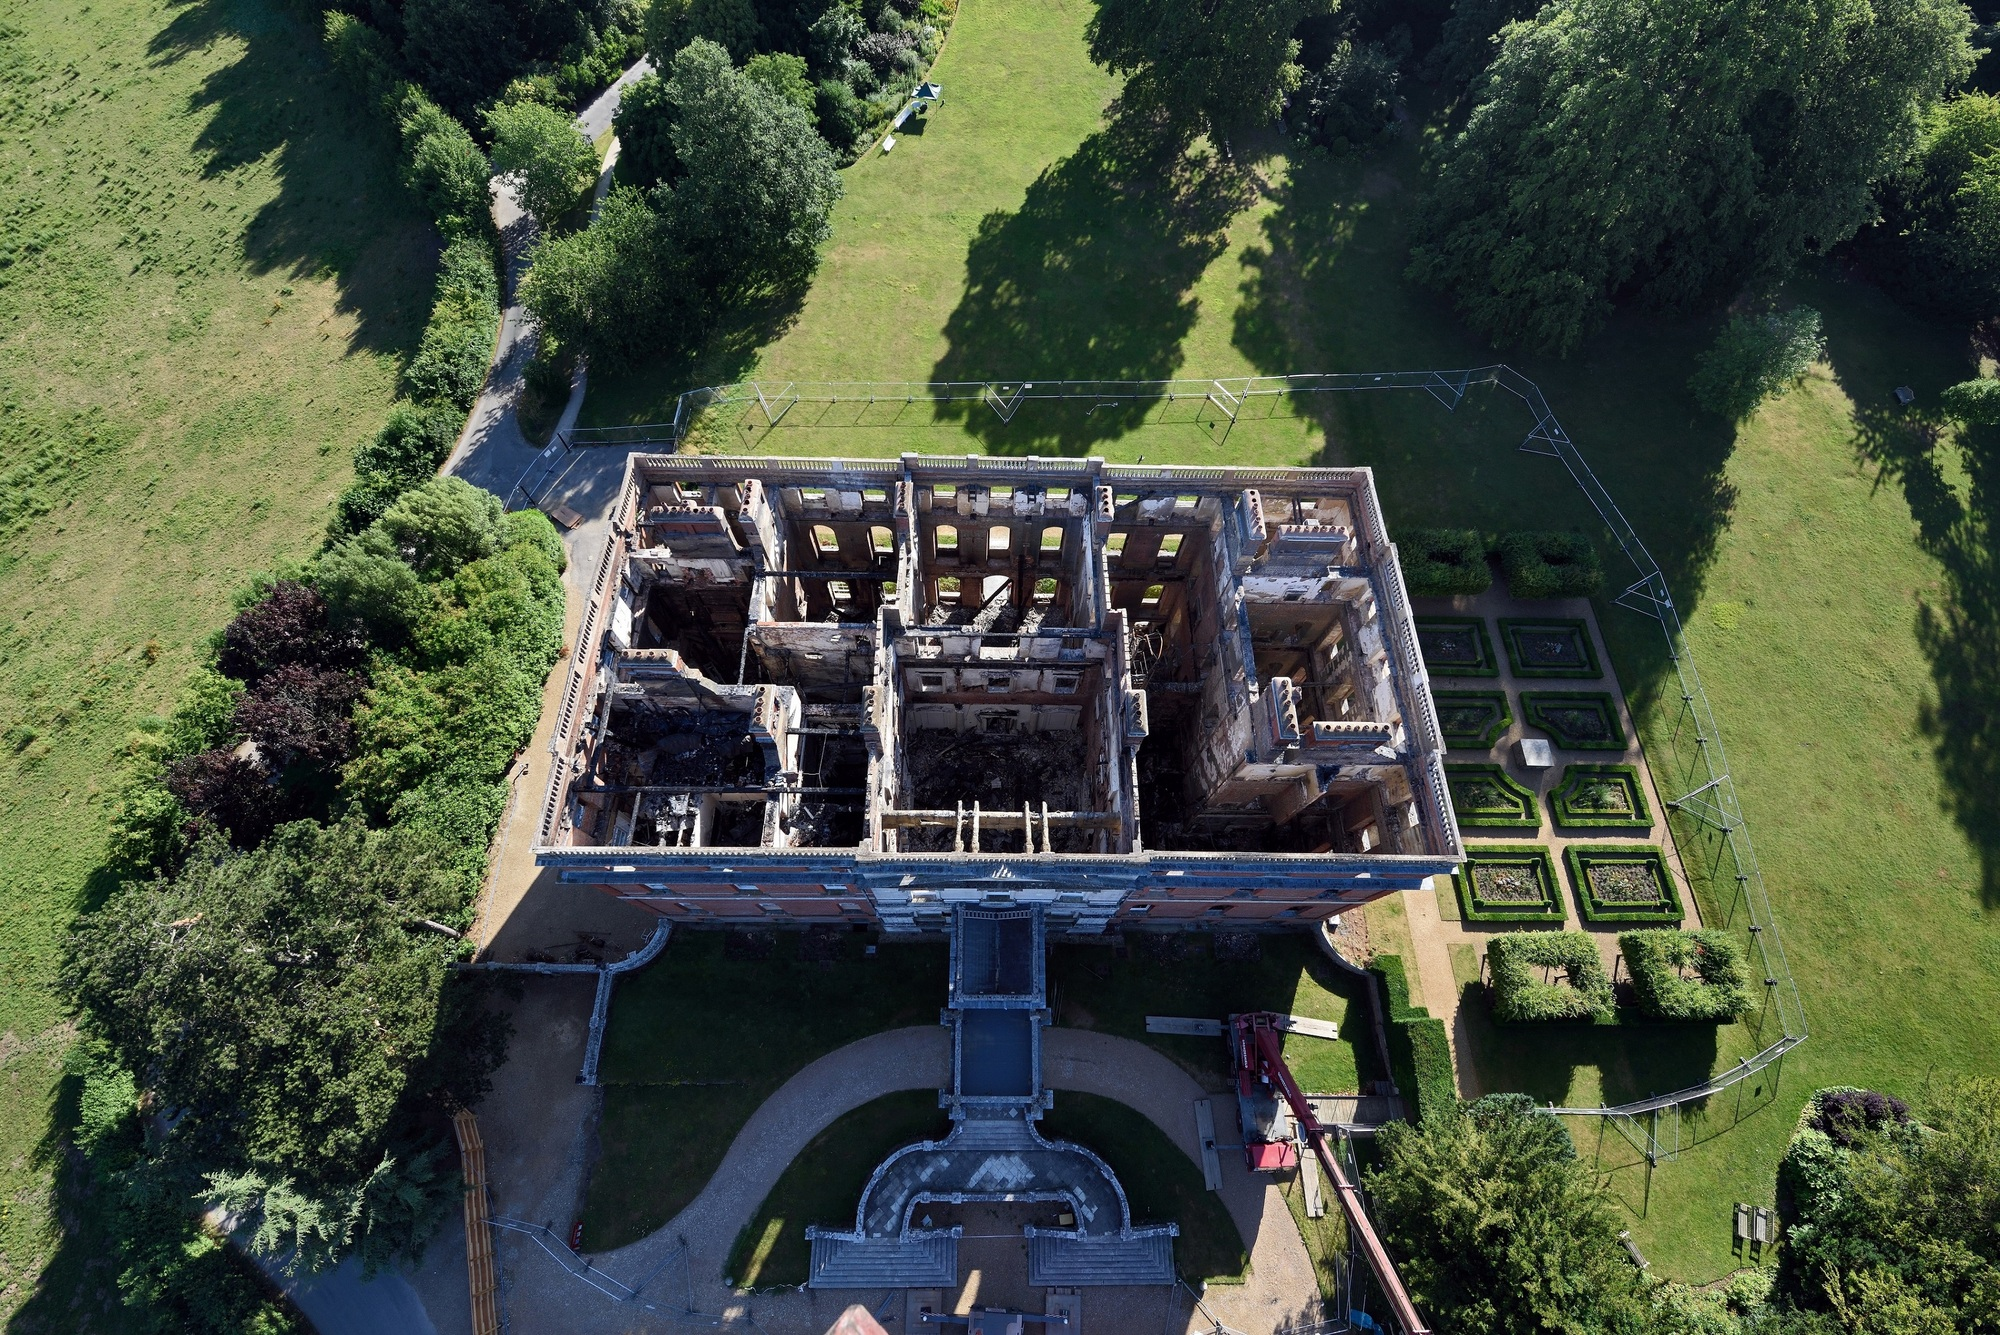 Best Image Clandon Park International Design Competition - Call for Submissions